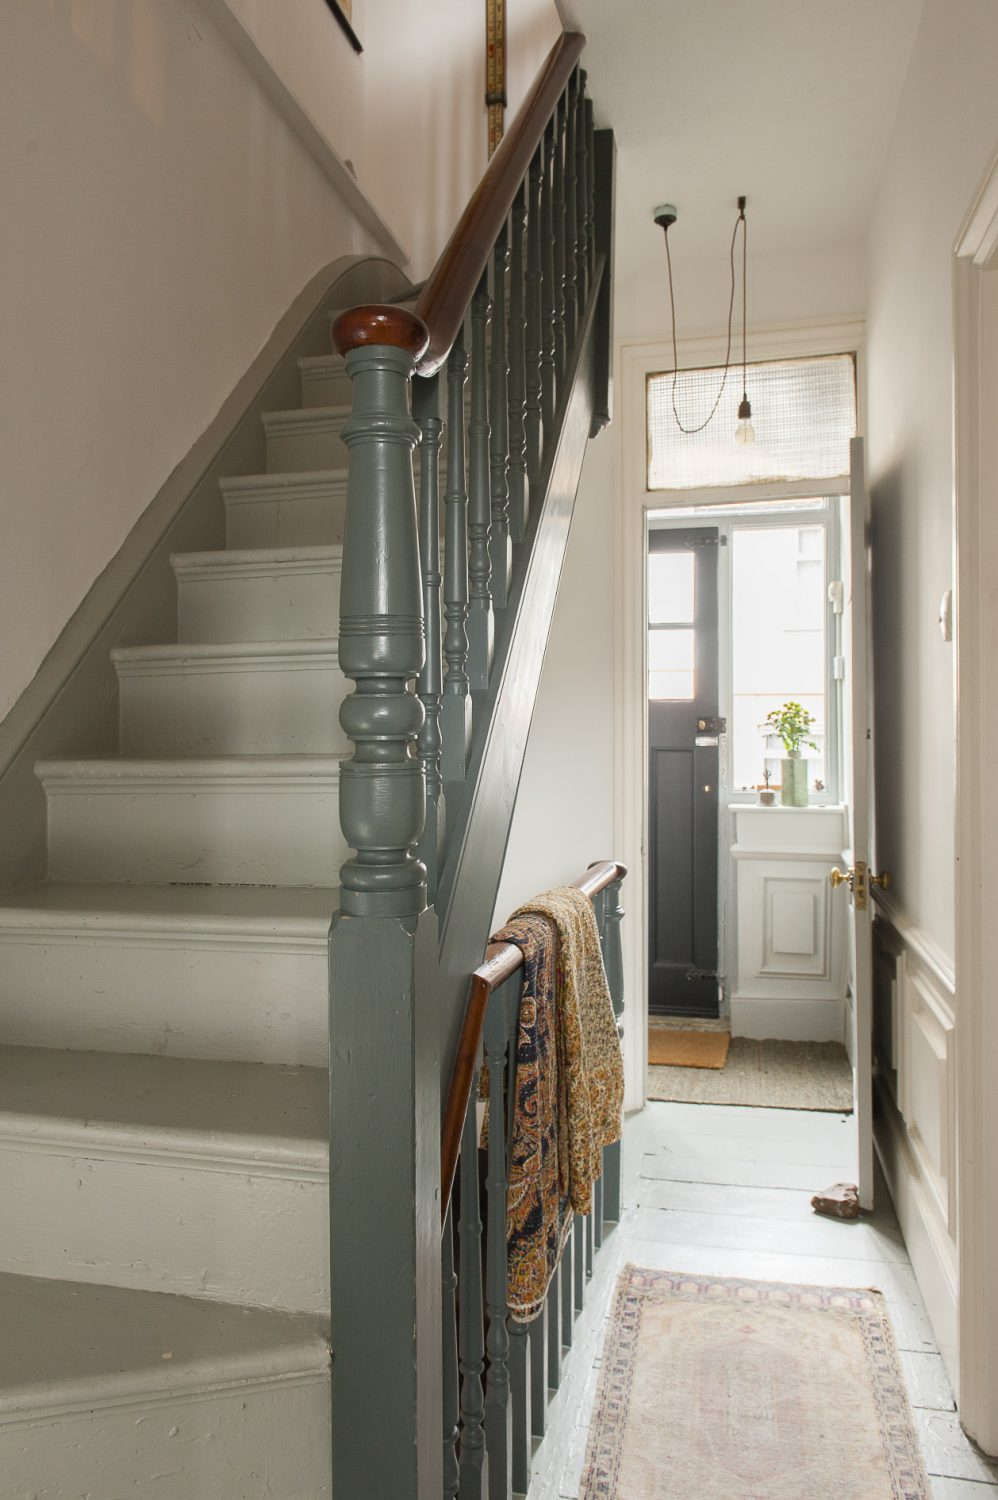 The staircase that winds up through the house is used to display more of the couple's finds